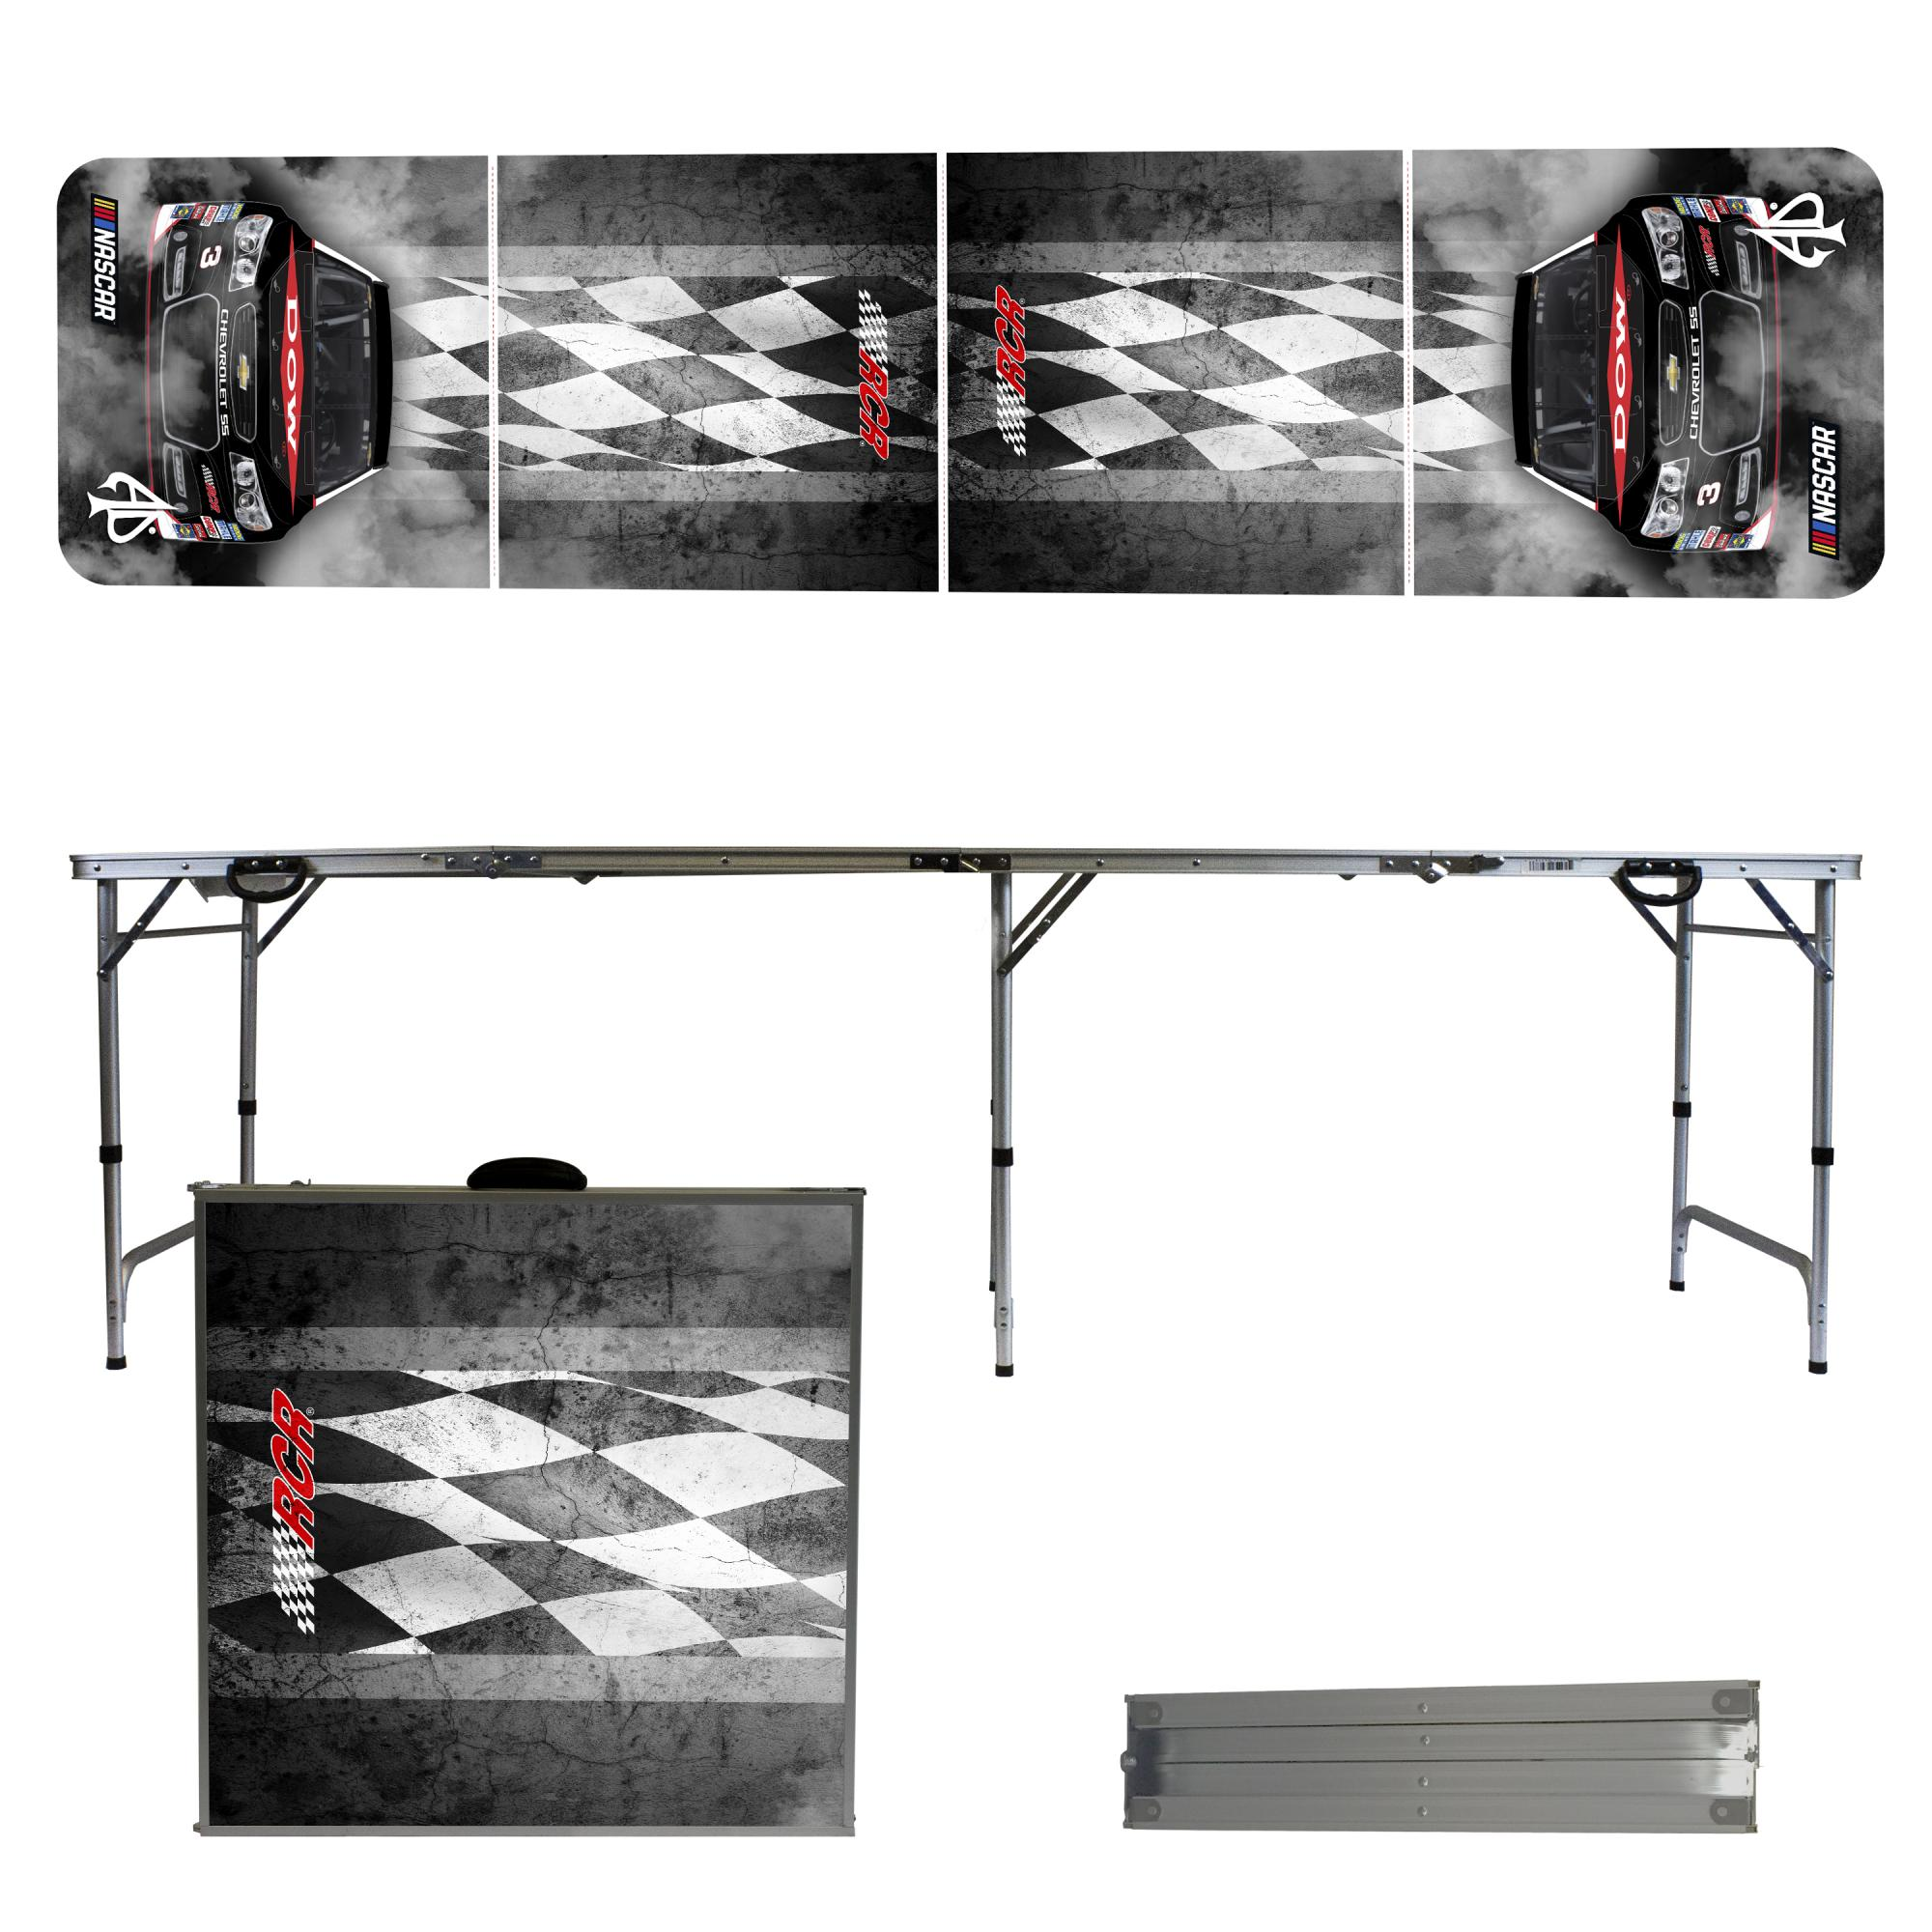 Austin Dillon Tailgating, Camping & Pong Table